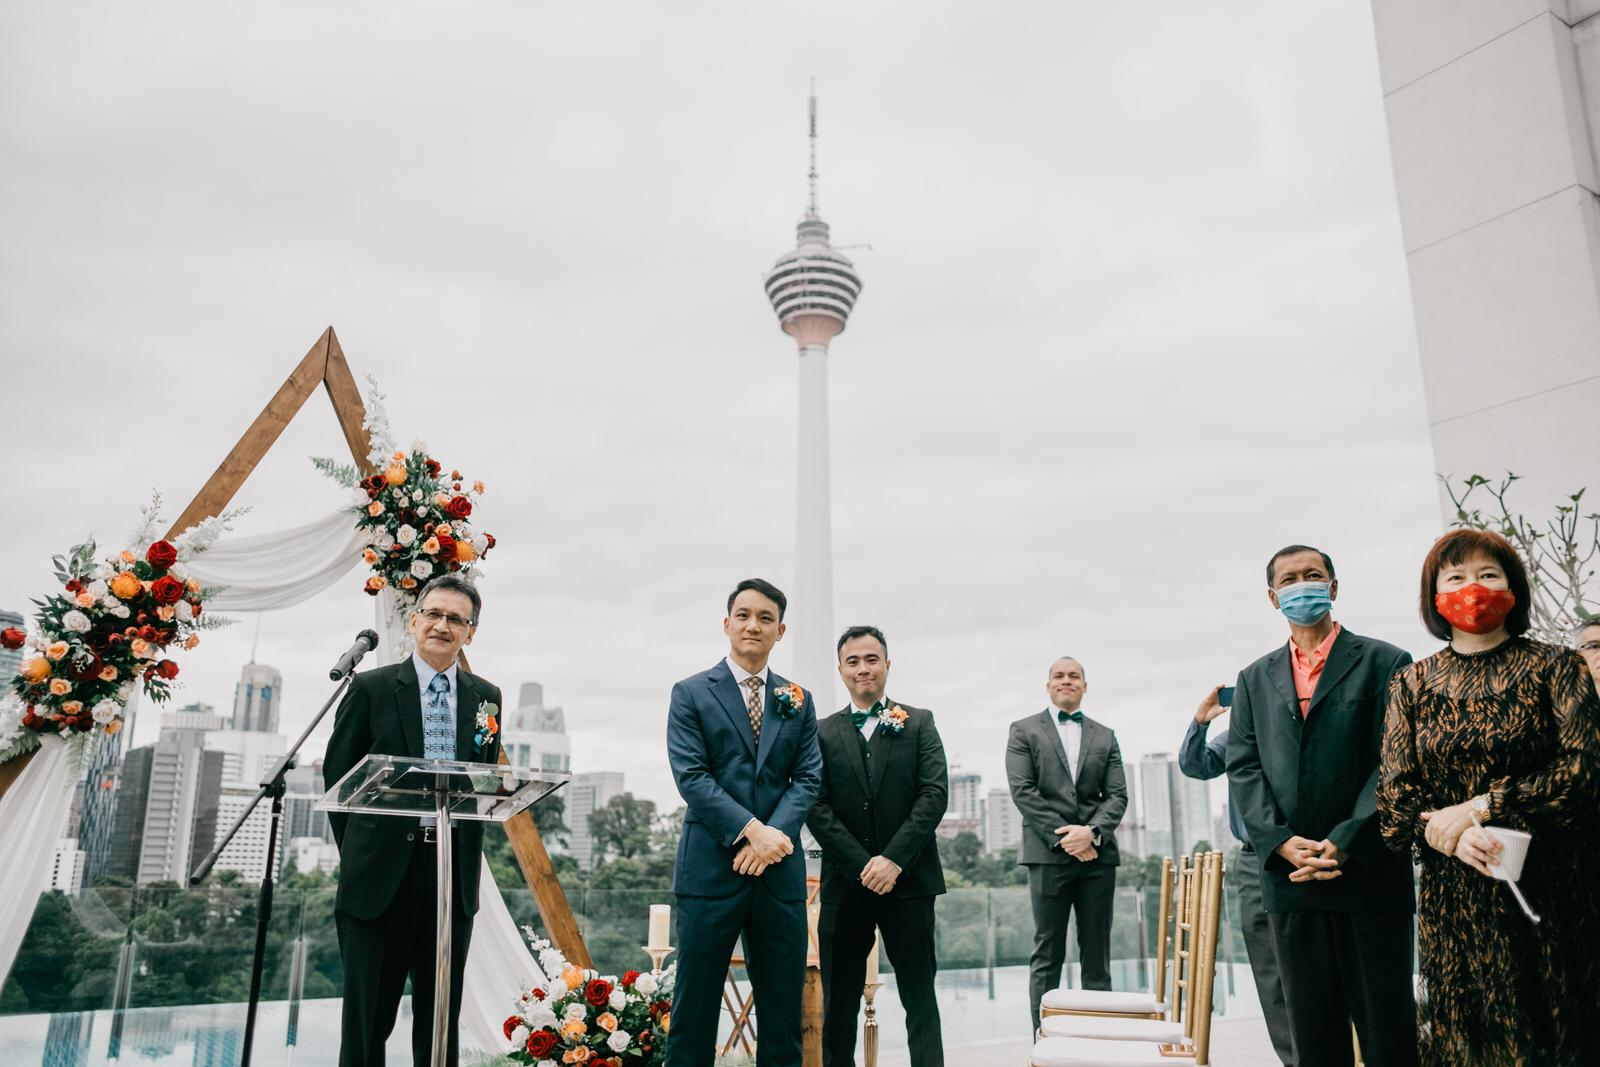 Groom waiting for Father & Bride March In Boho Deco Rooftop Poolside Wedding at Hotel Stripes Kuala Lumpur MCO2.0 Cliff Choong Photography Malaysia Covid19 ROM